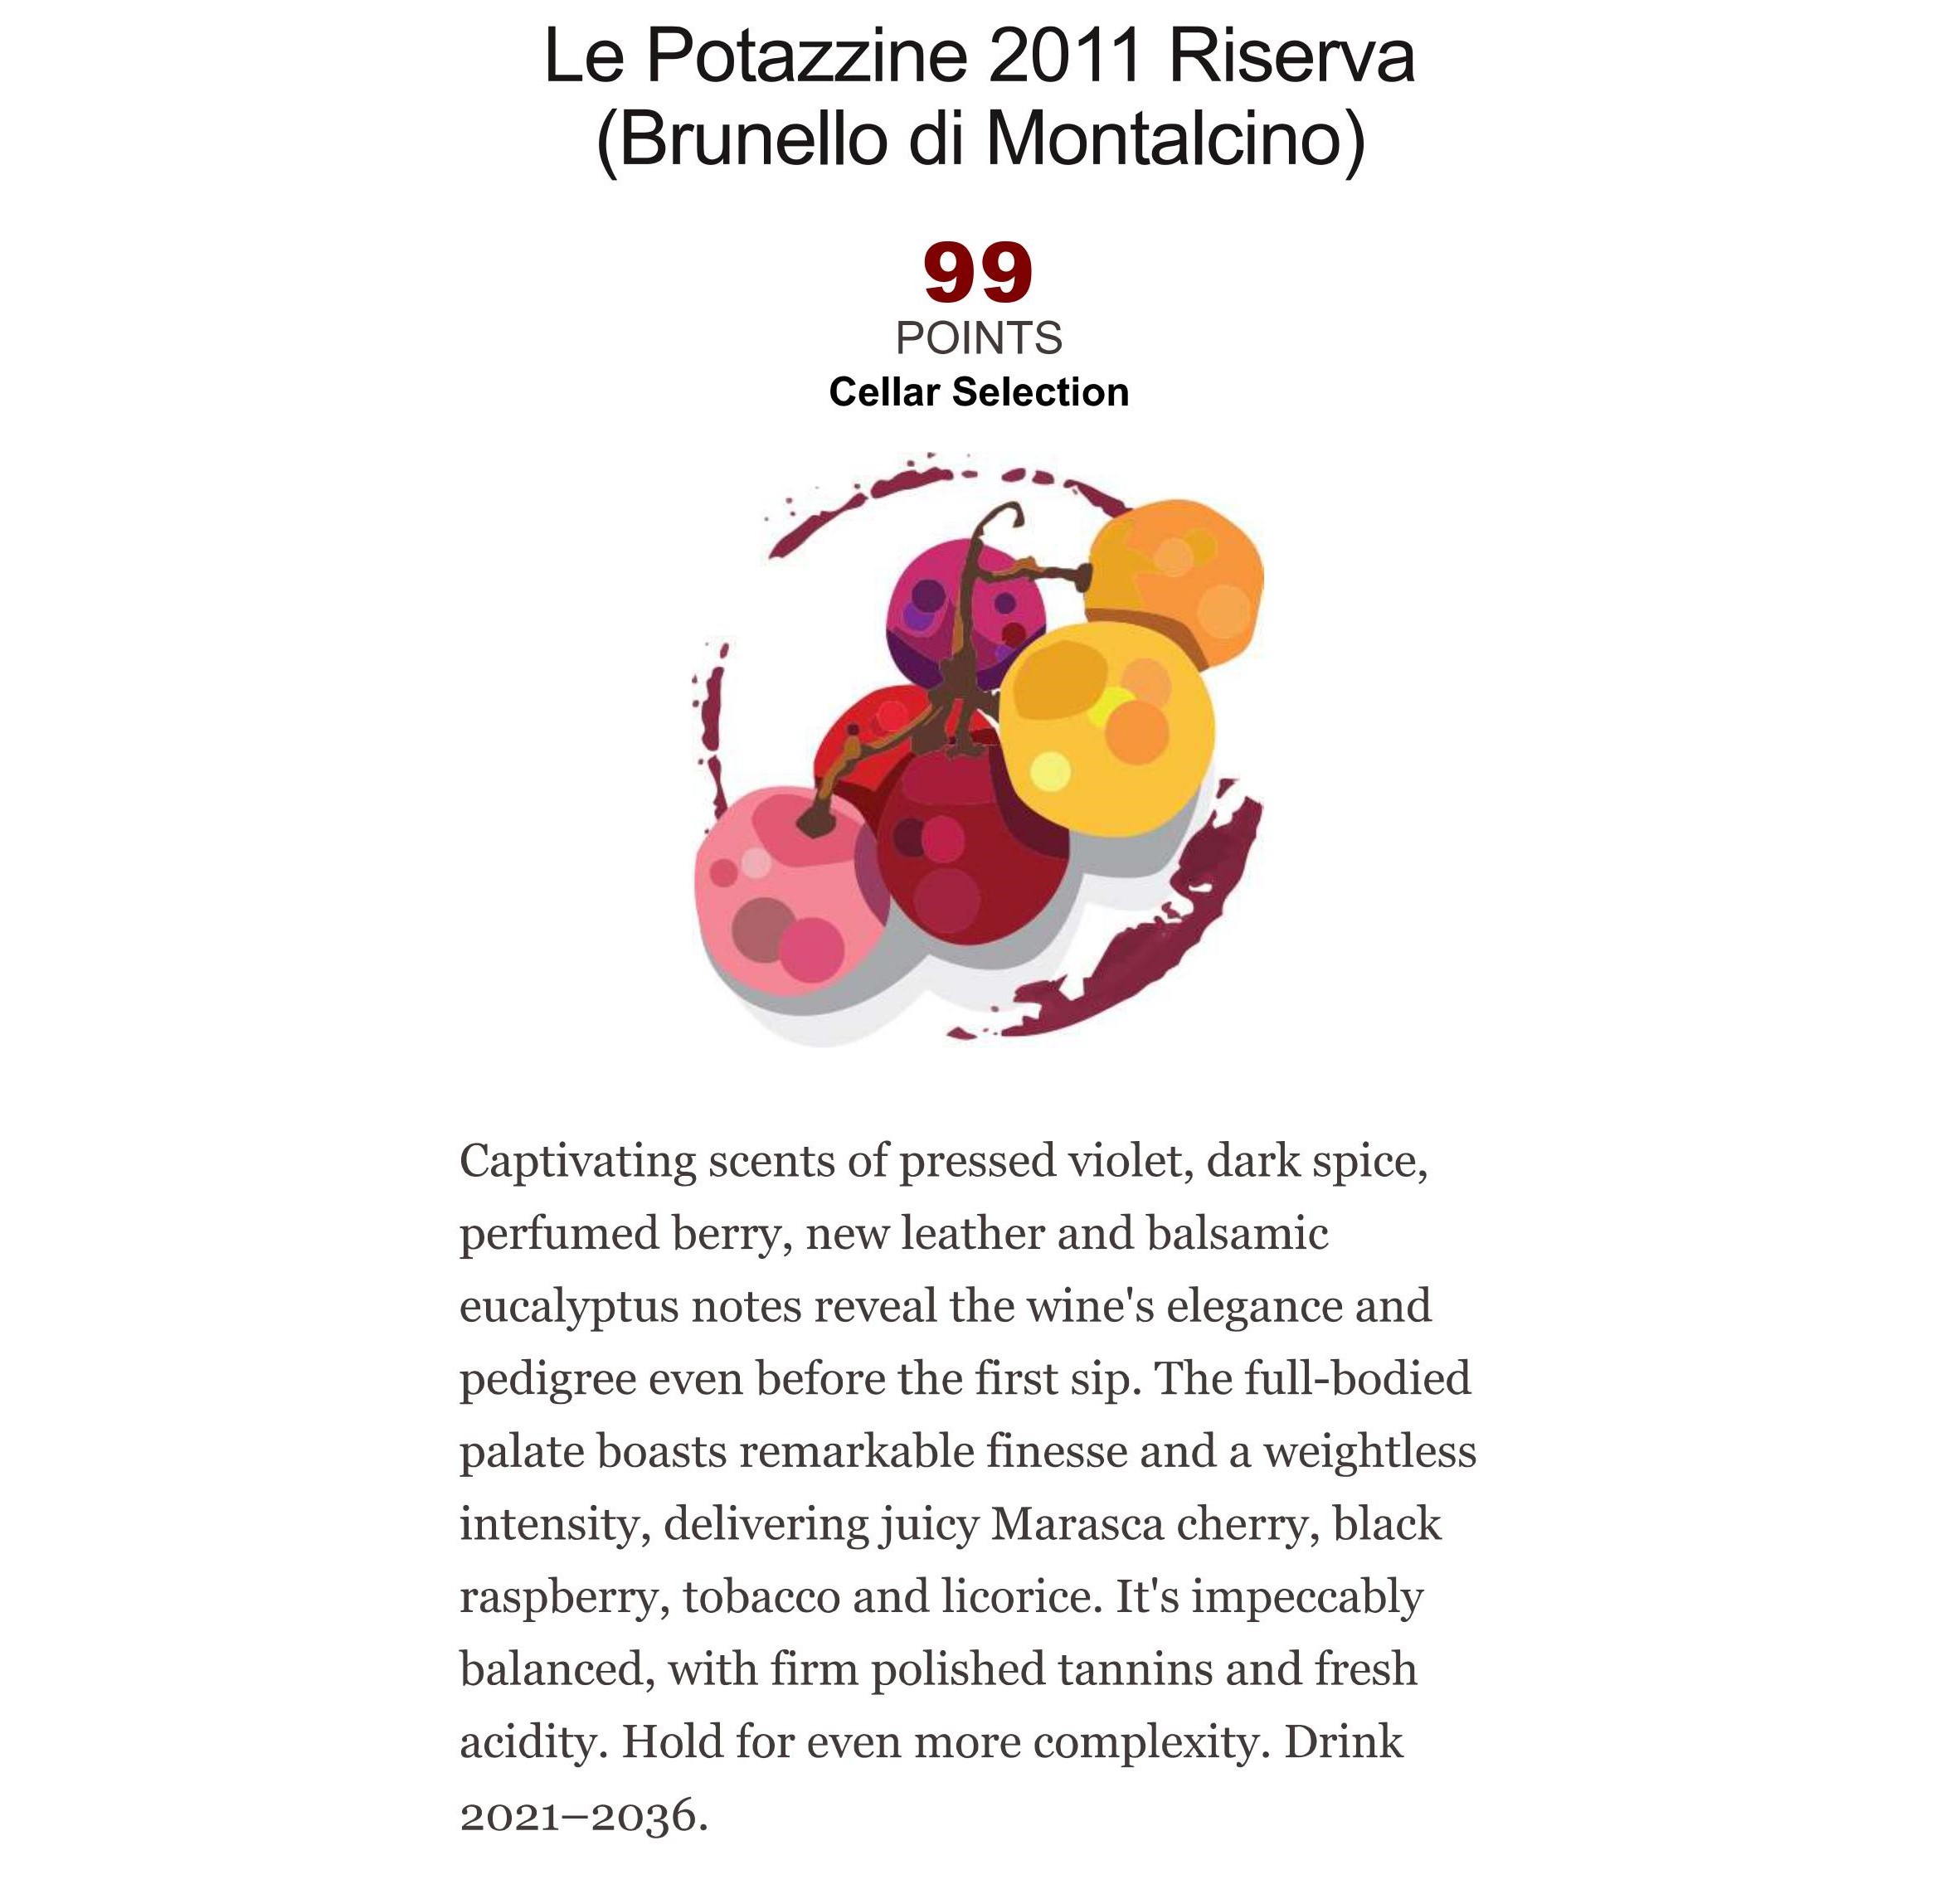 Our Brunello Riserva 2011 Rated 99 Points By Kerin OKeefe On Wine Enthusiast